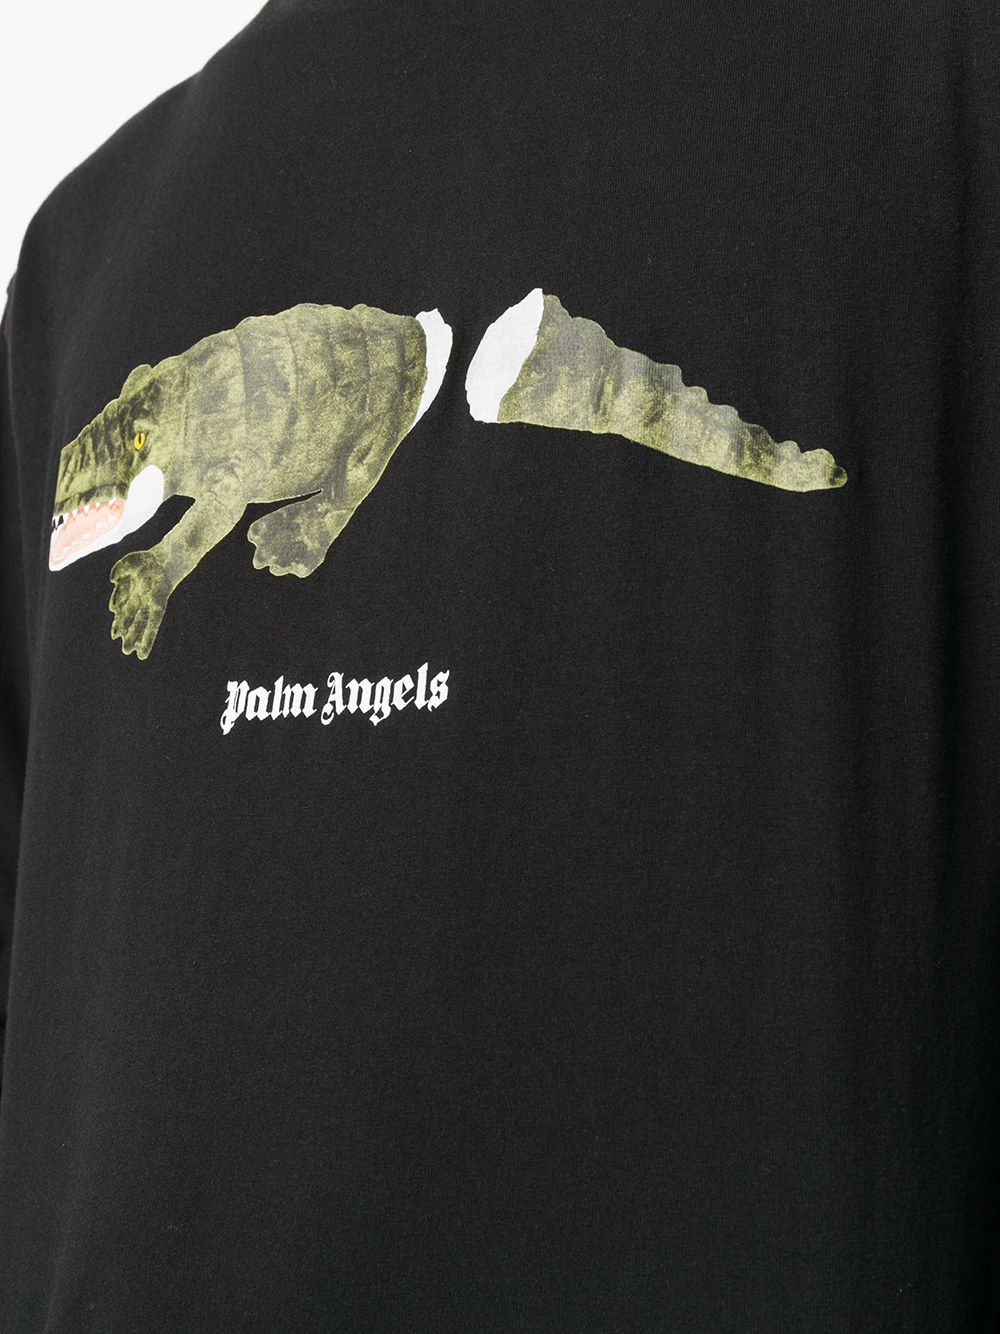 PALM ANGELS MEN CROCO TEE L/S